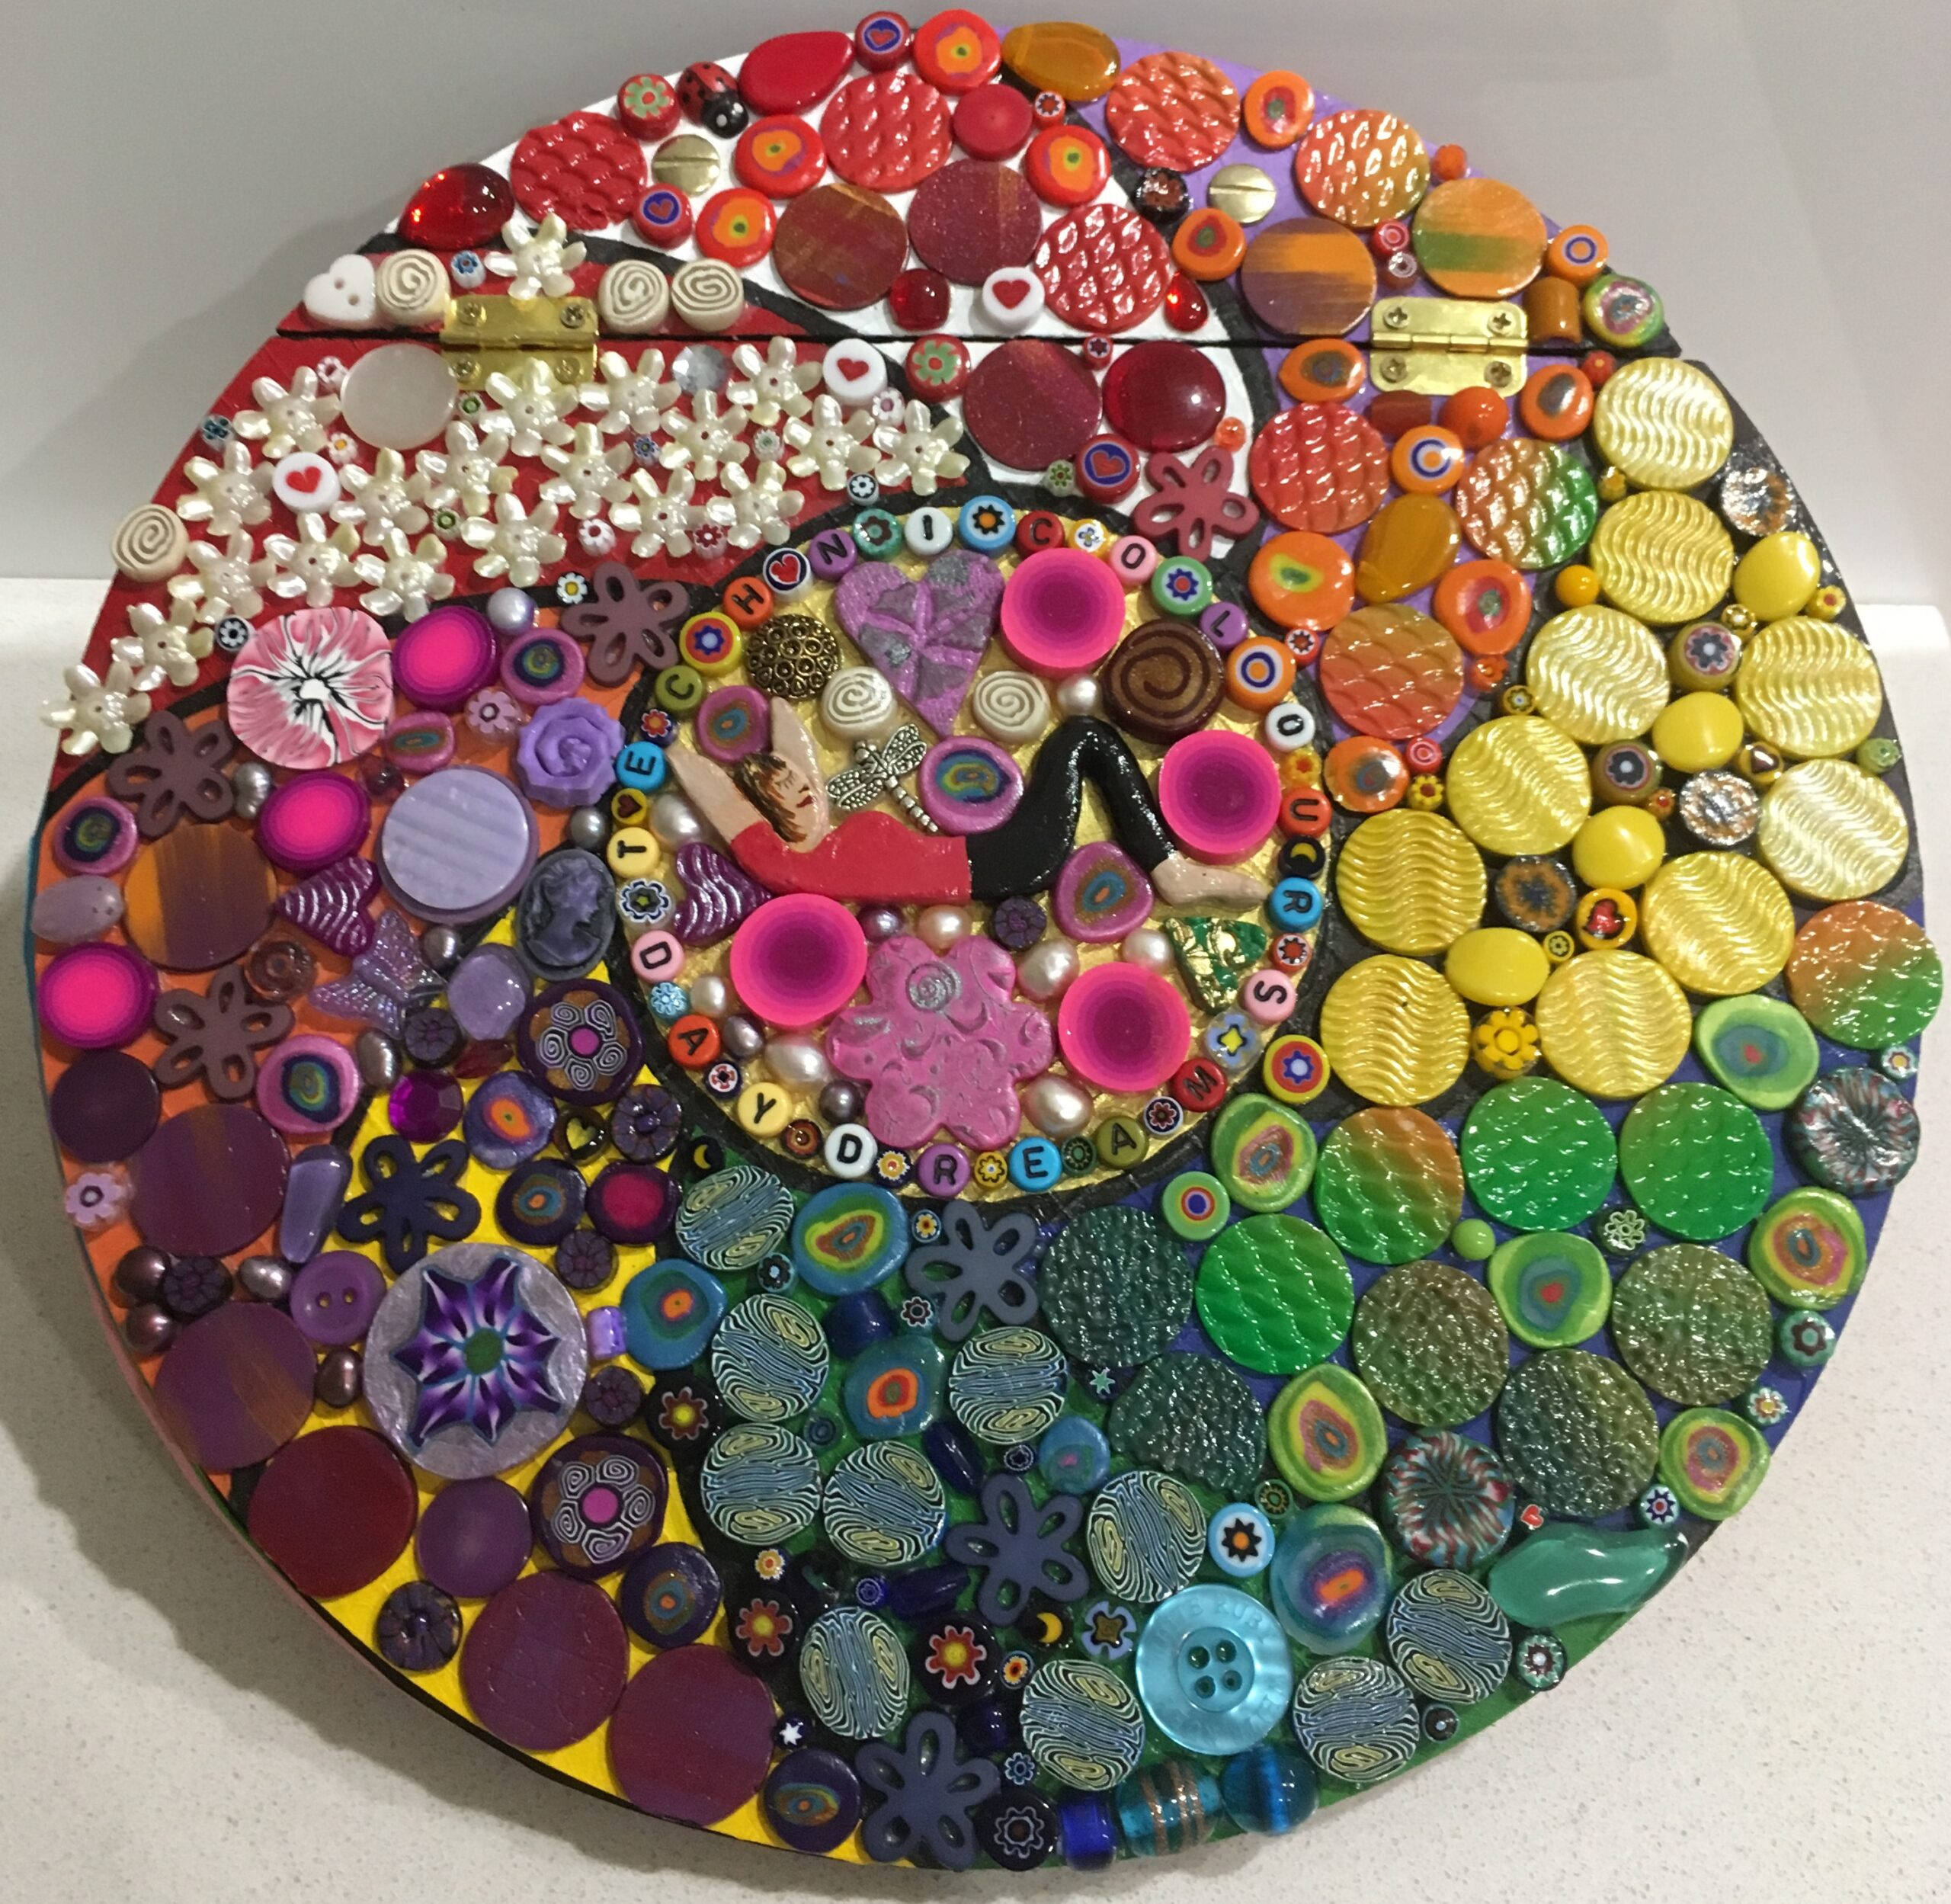 Image of a round mosaic book cover featuring polymer clay pieces and found objects.